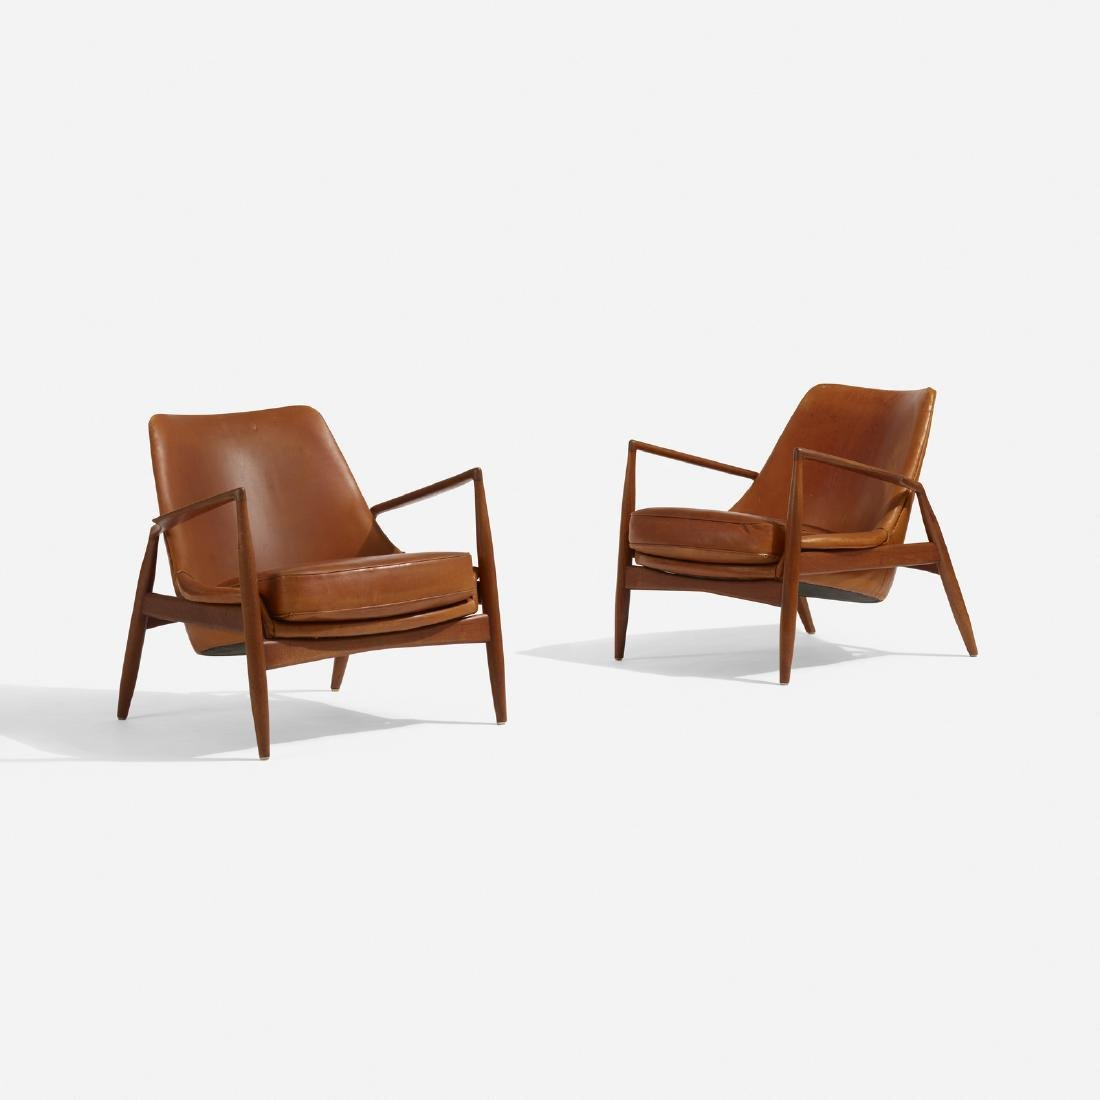 Ib Kofod-Larsen, Seal lounge chairs, pair